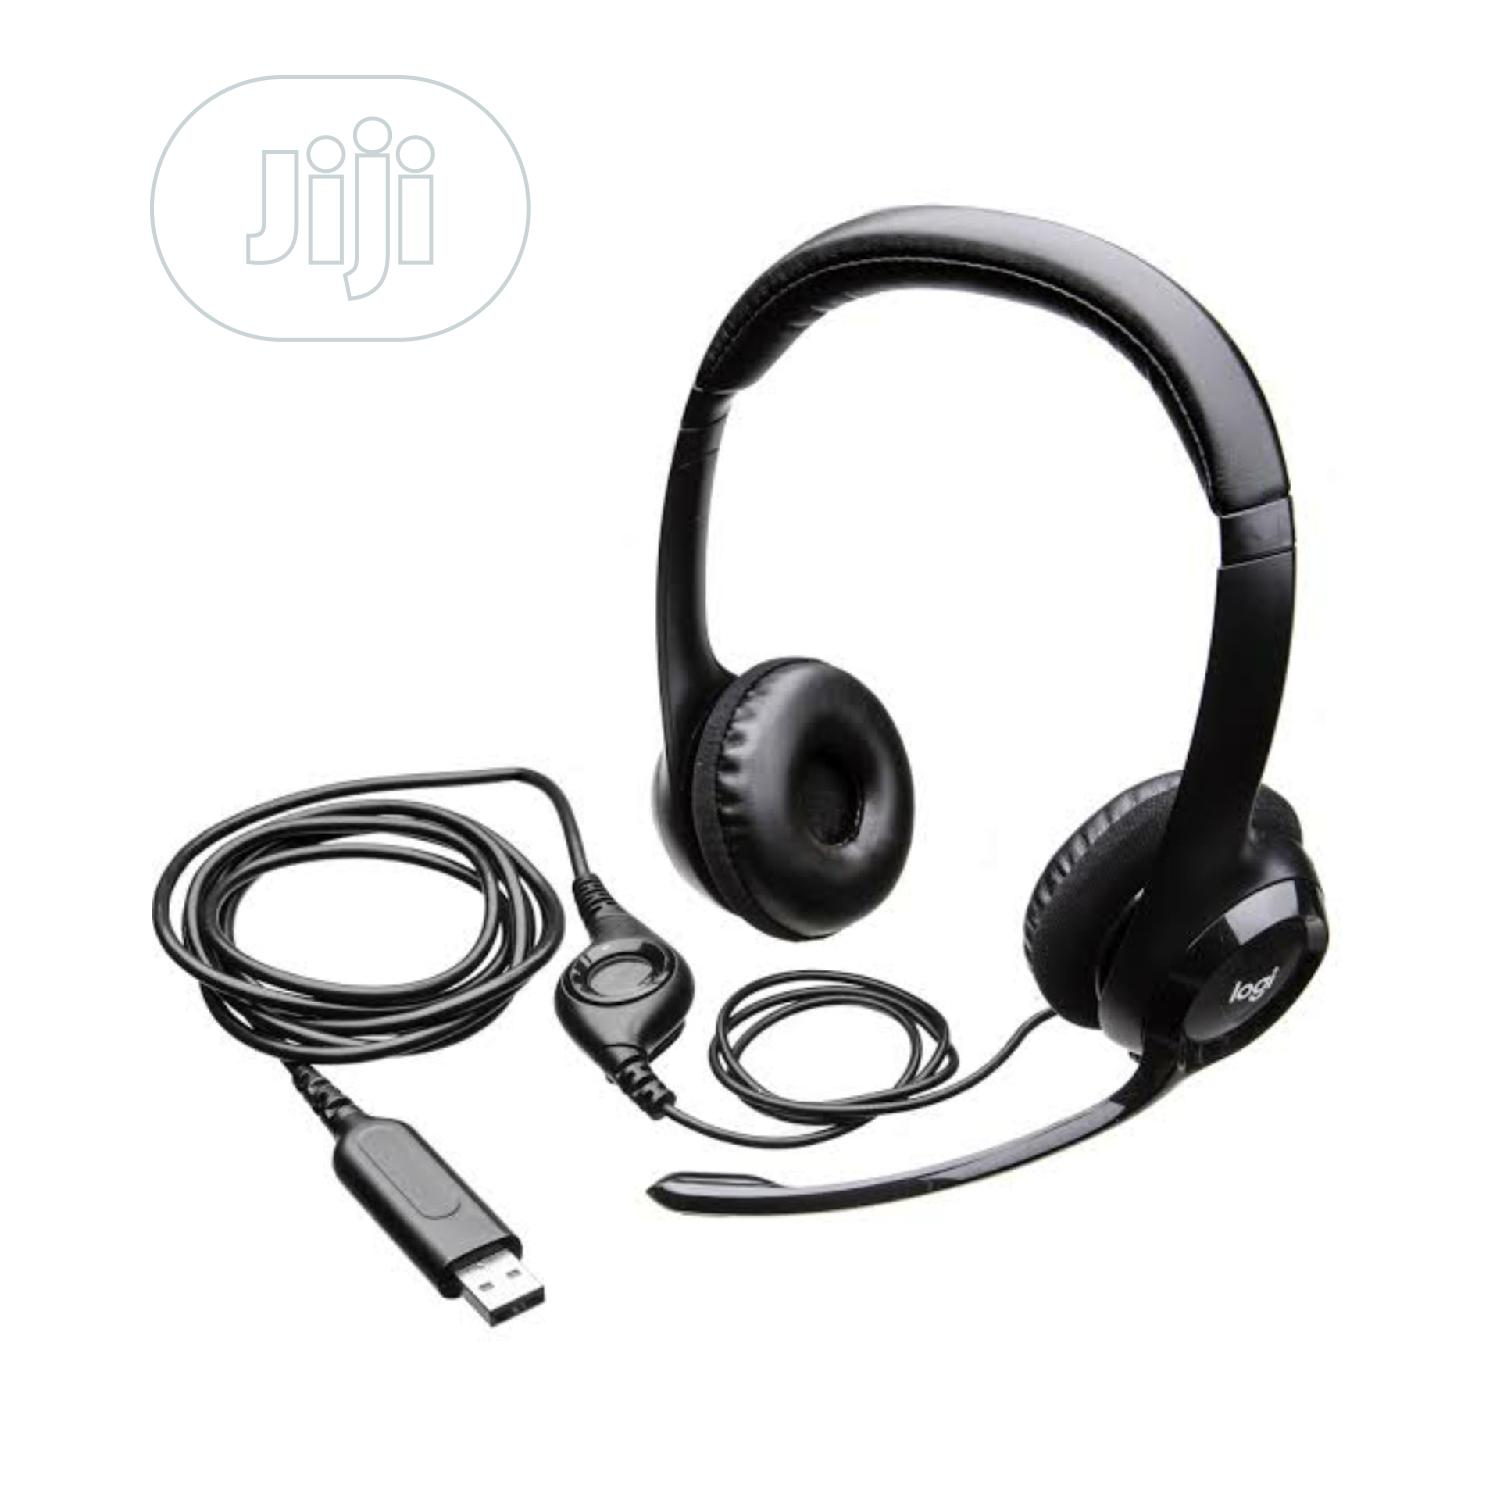 H390 Logitech Headser With Mic And USB Port   Headphones for sale in Ikeja, Lagos State, Nigeria